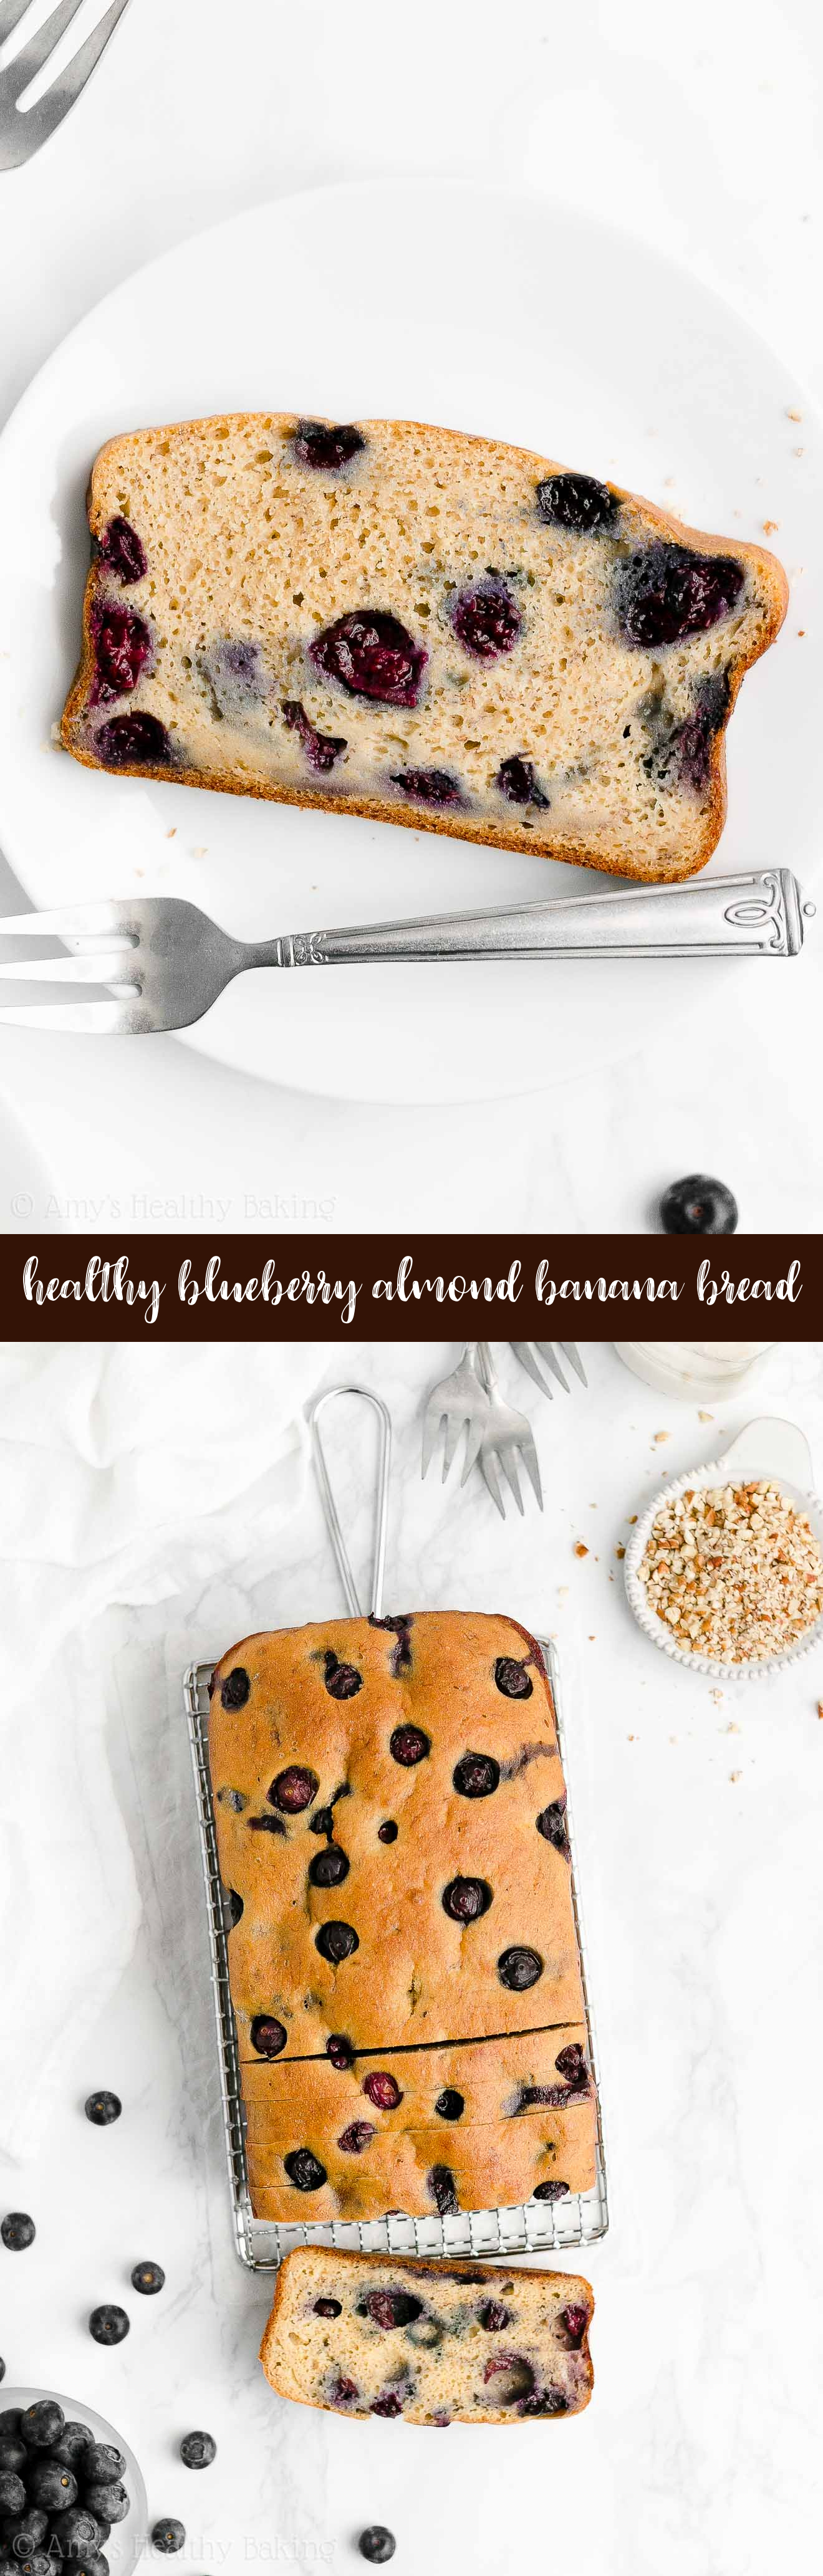 Best Easy Healthy Greek Yogurt No Sugar Moist Blueberry Almond Banana Bread